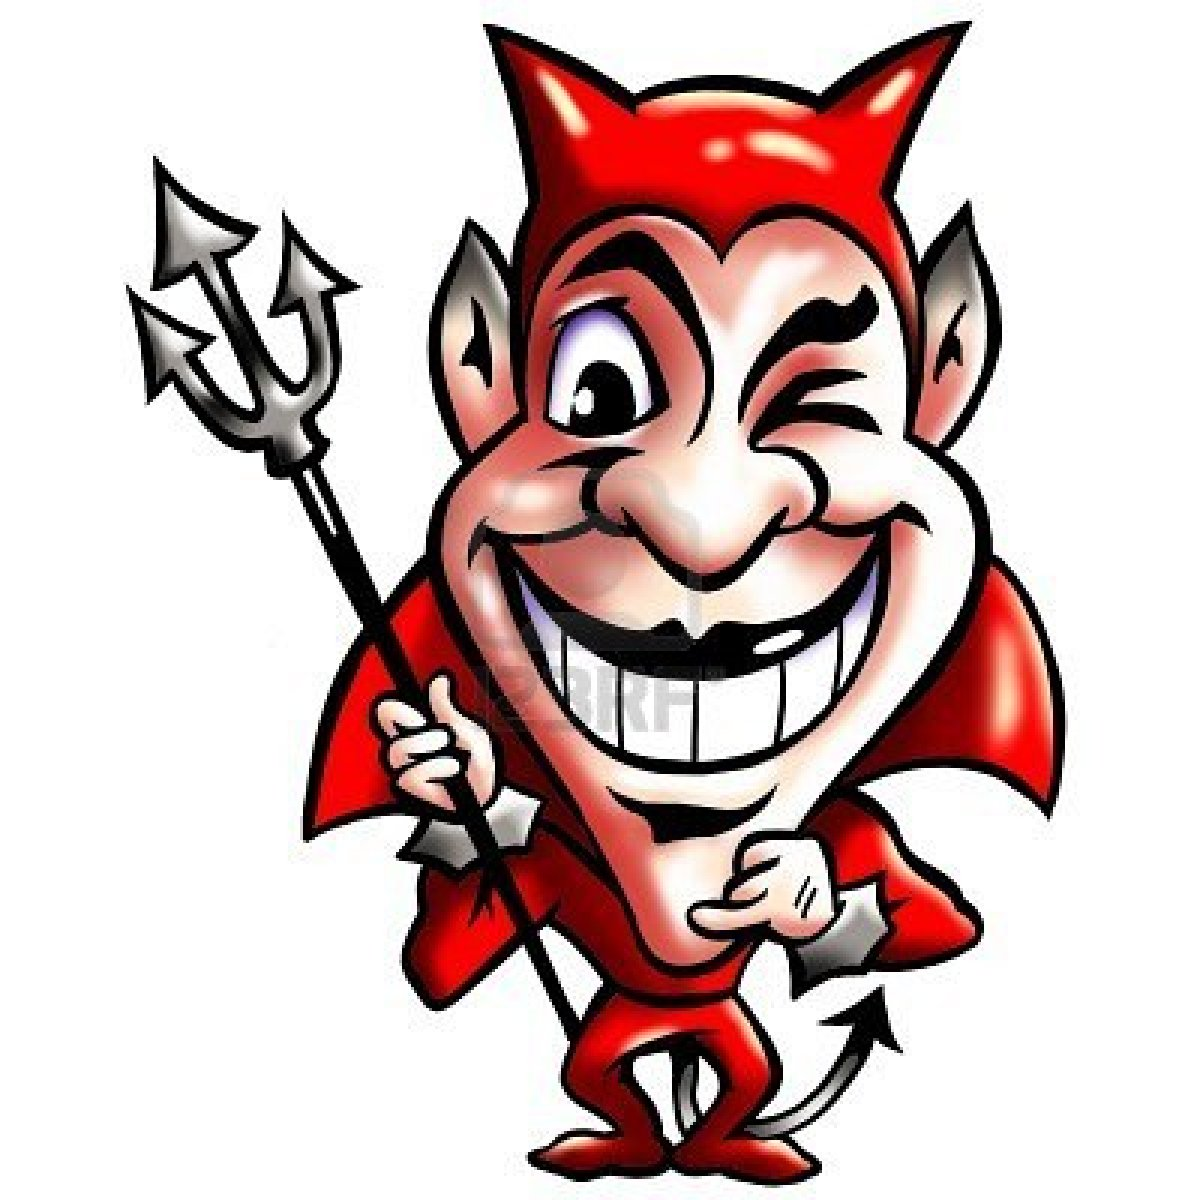 A Red Devil